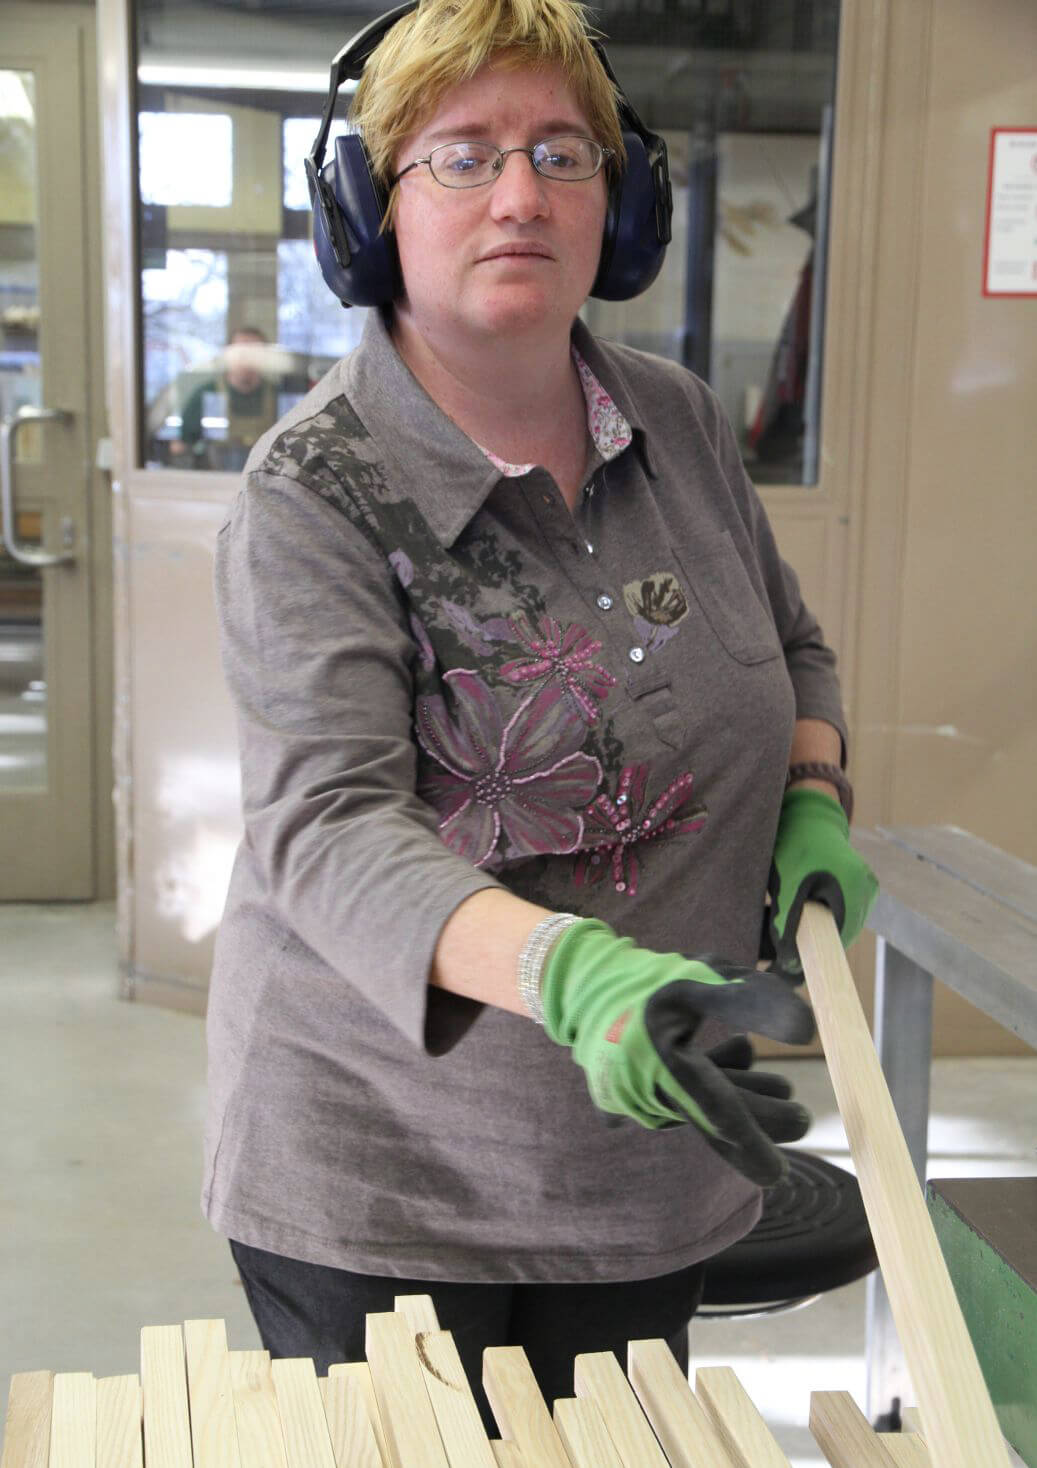 A female Metalog Tools employee wearing green gloves selects a raw birch wood board to be handcrafted into a team building tool